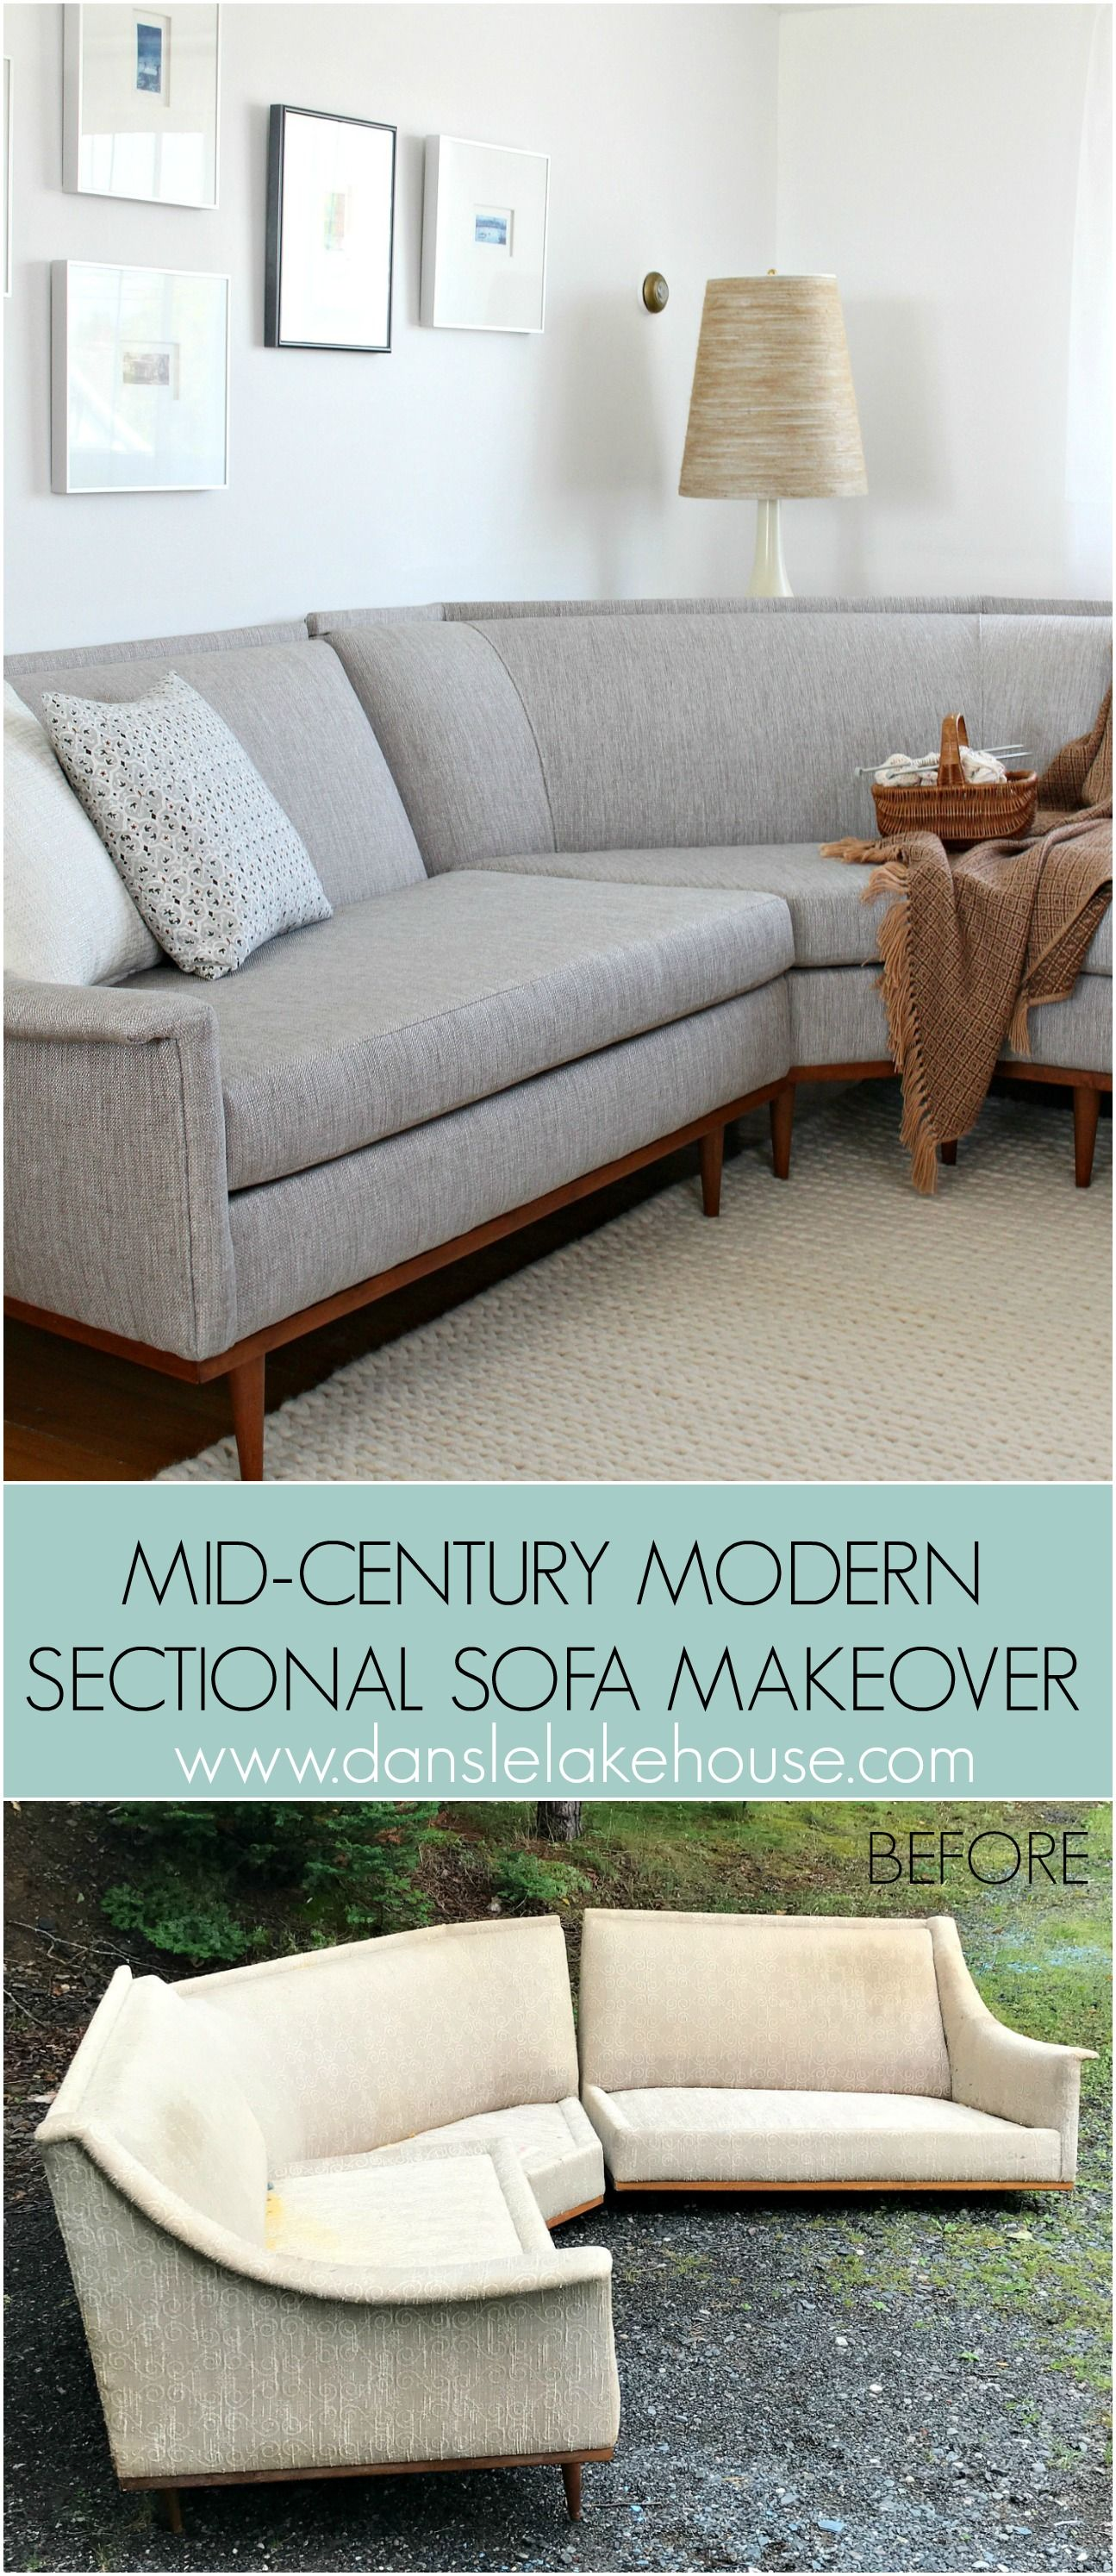 Peachy Mid Century Modern Sectional Sofa Makeover Remodel Ideas Pdpeps Interior Chair Design Pdpepsorg